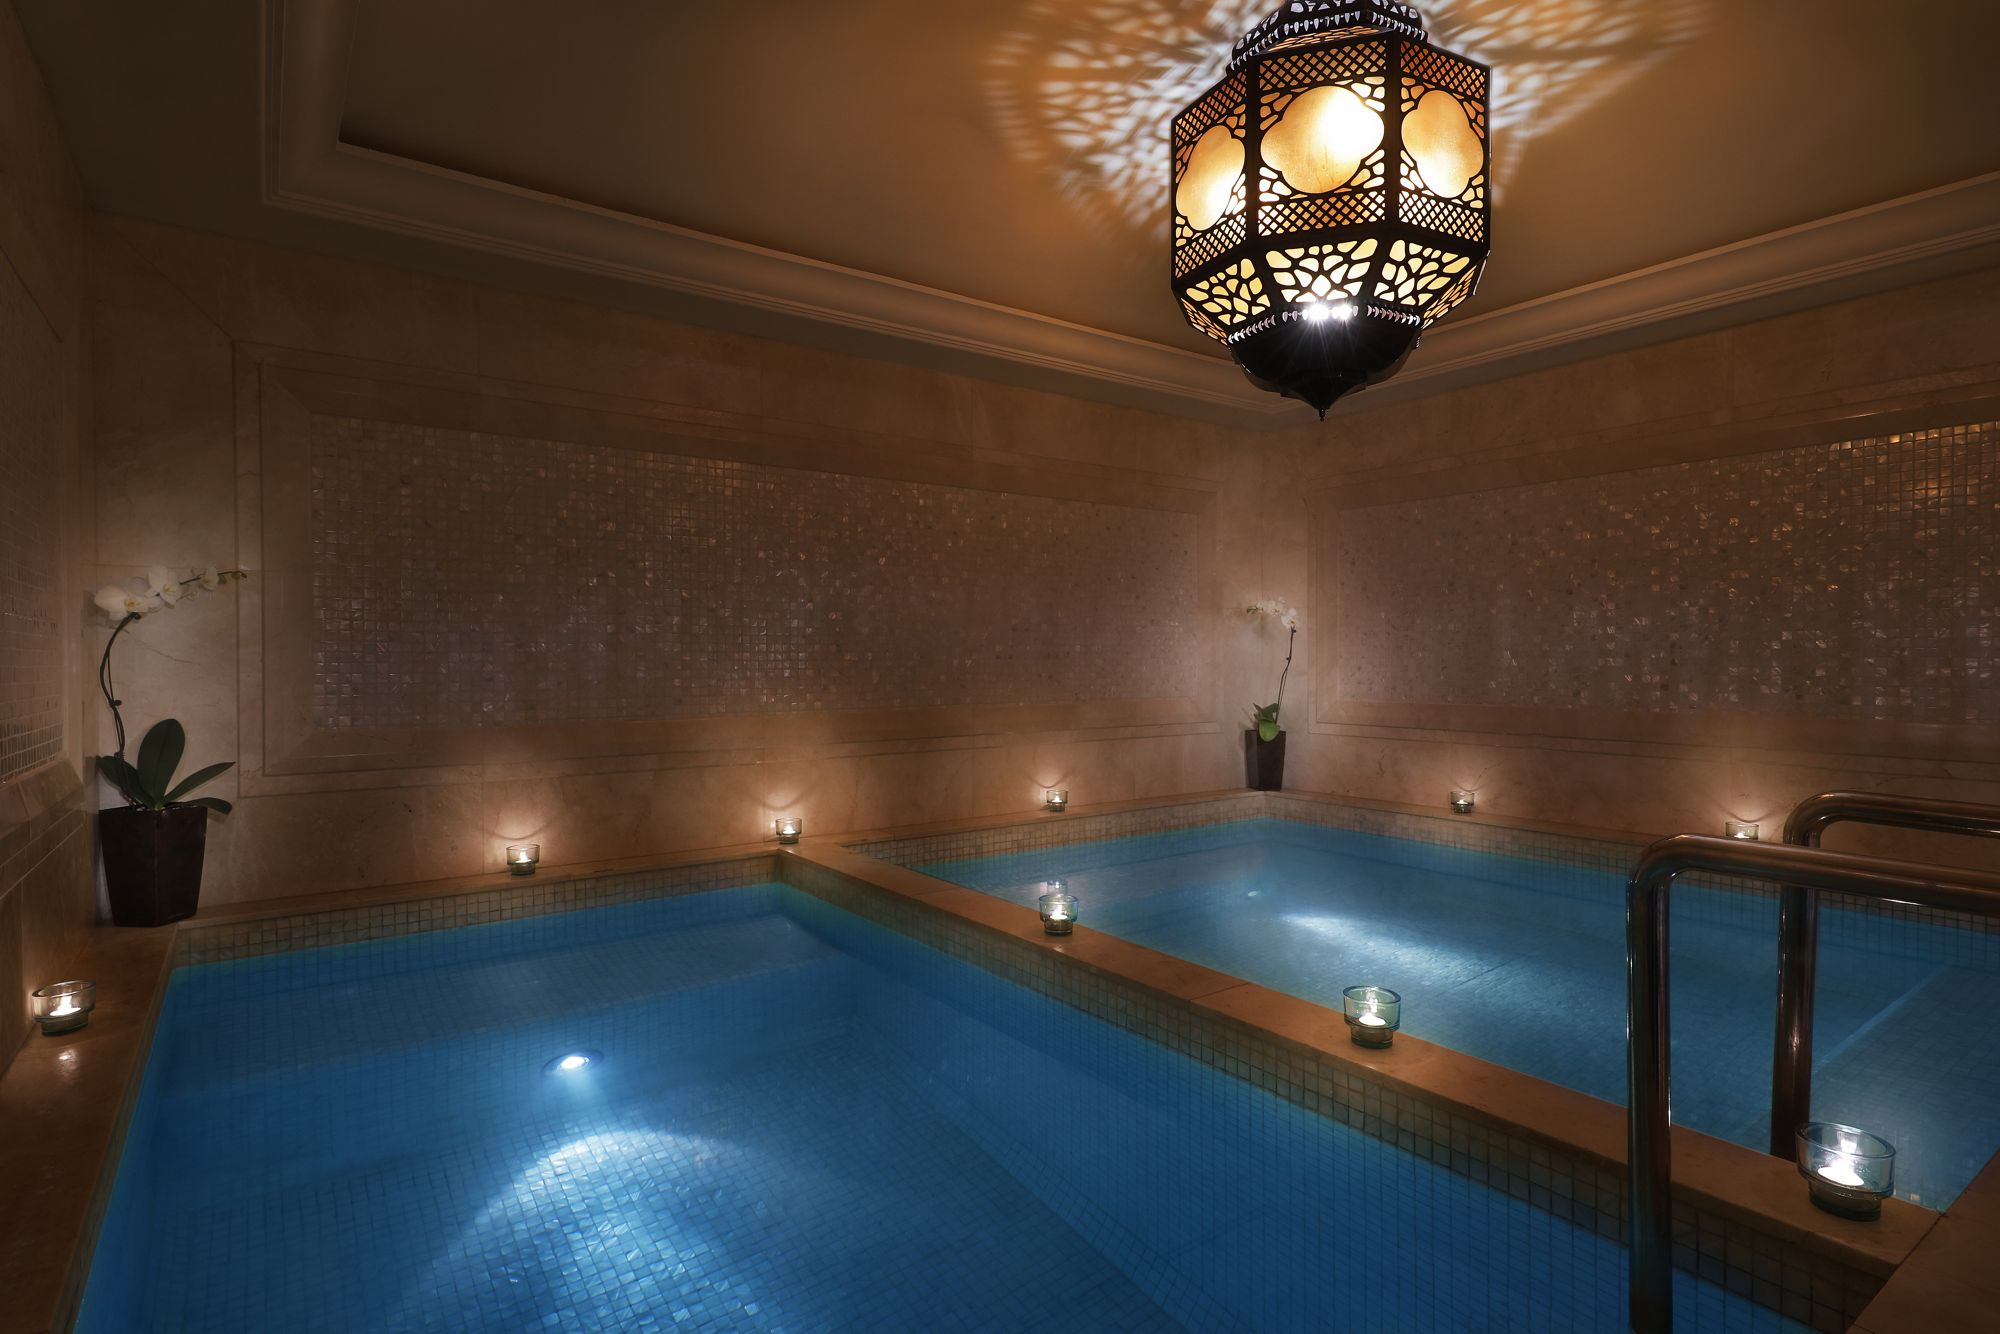 Luxury Spa in Dubai | The Ritz-Carlton, Dubai Spa